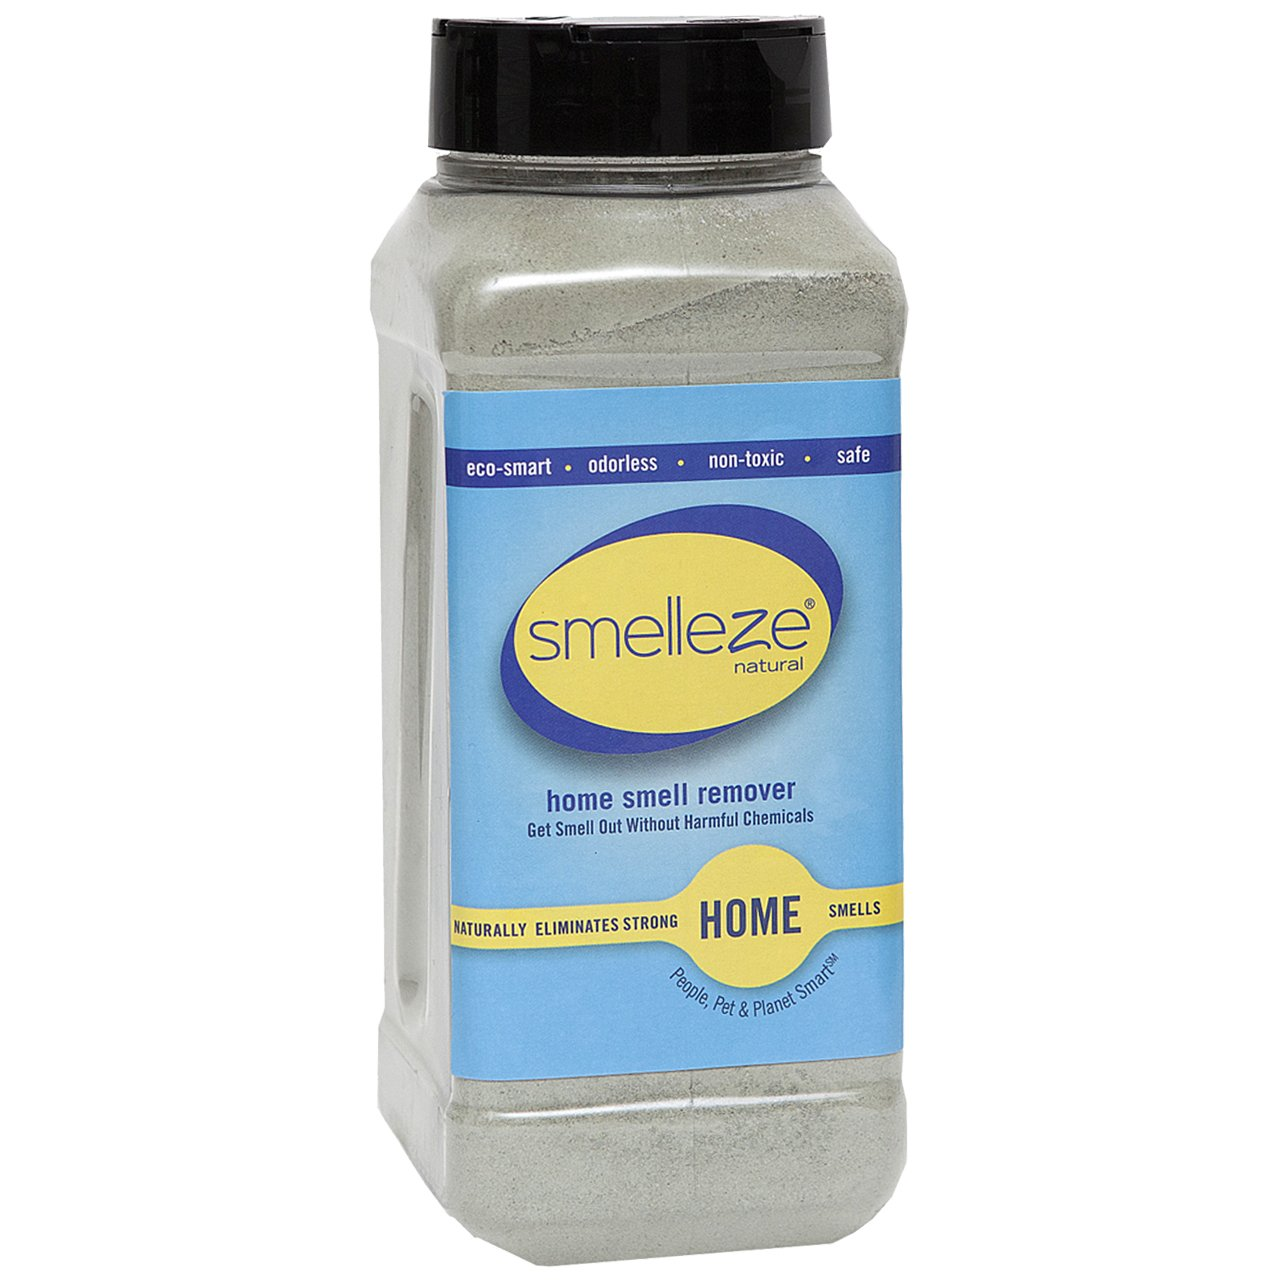 SMELLEZE Natural Room/House Odor Eliminator Deodorizer: 50 lb Granules Get Home Smell Out Fast